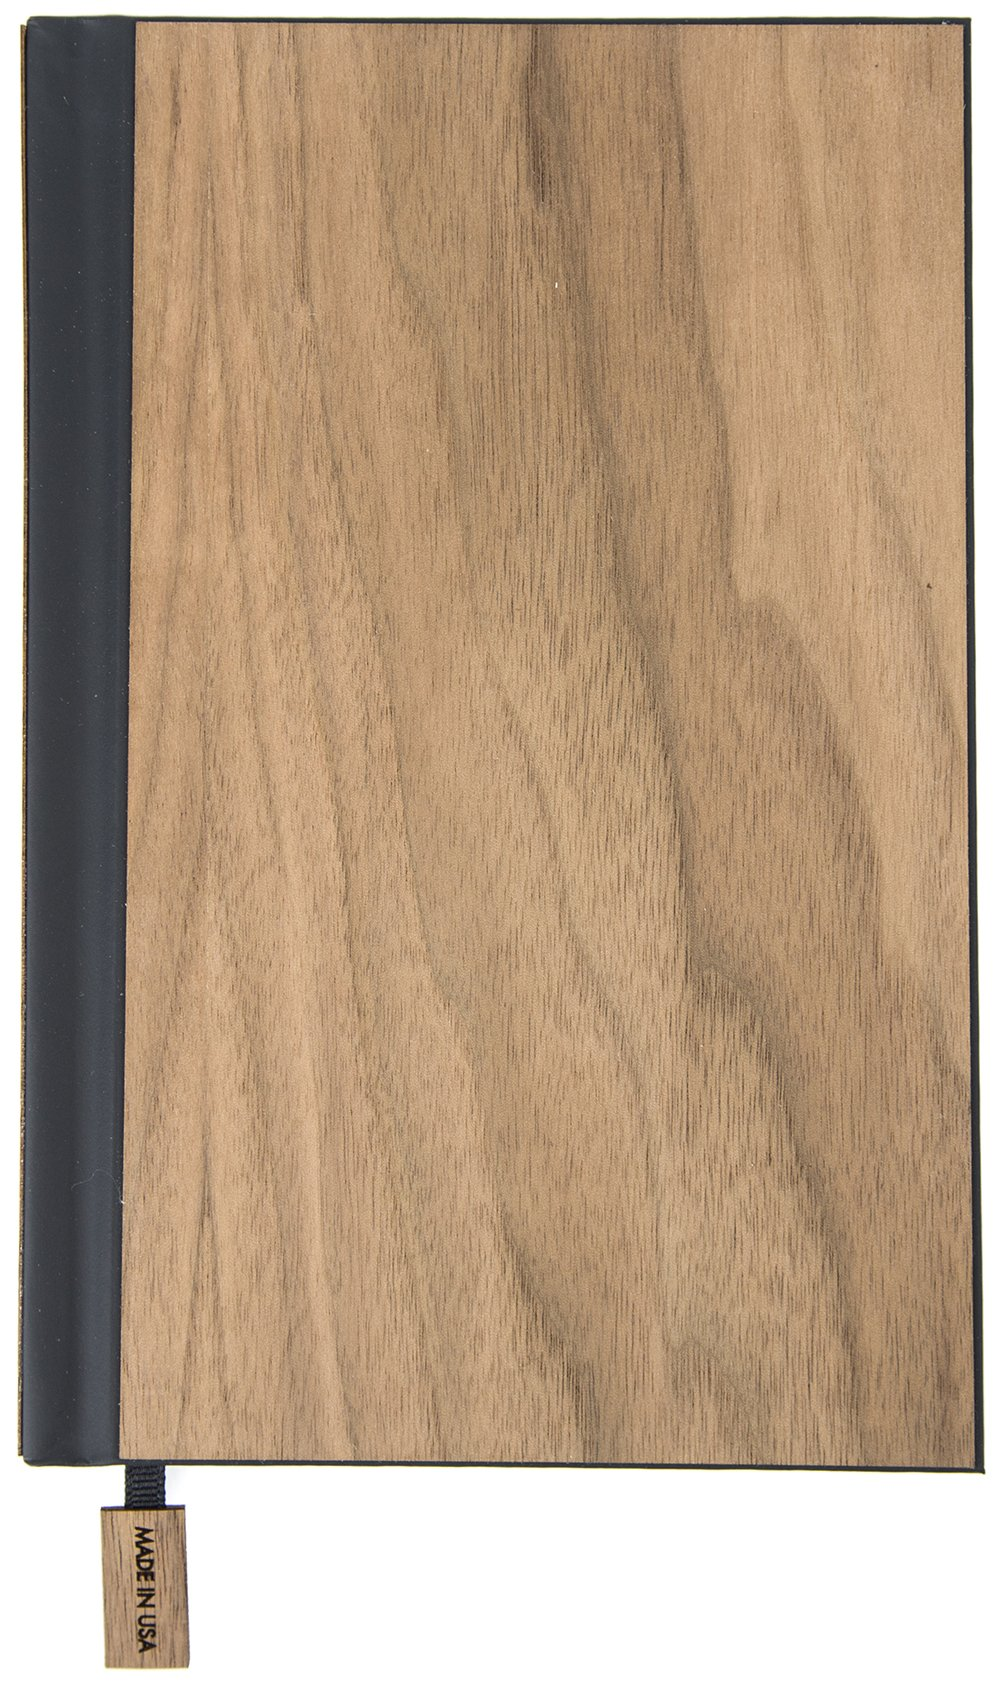 """Woodchuck - Classic Journal (6.5"""" x 4.5"""") - 88 Pages - Made in the USA - Walnut Wood - Lined Certified Recycled Paper - Unique Grain for Every Journal"""